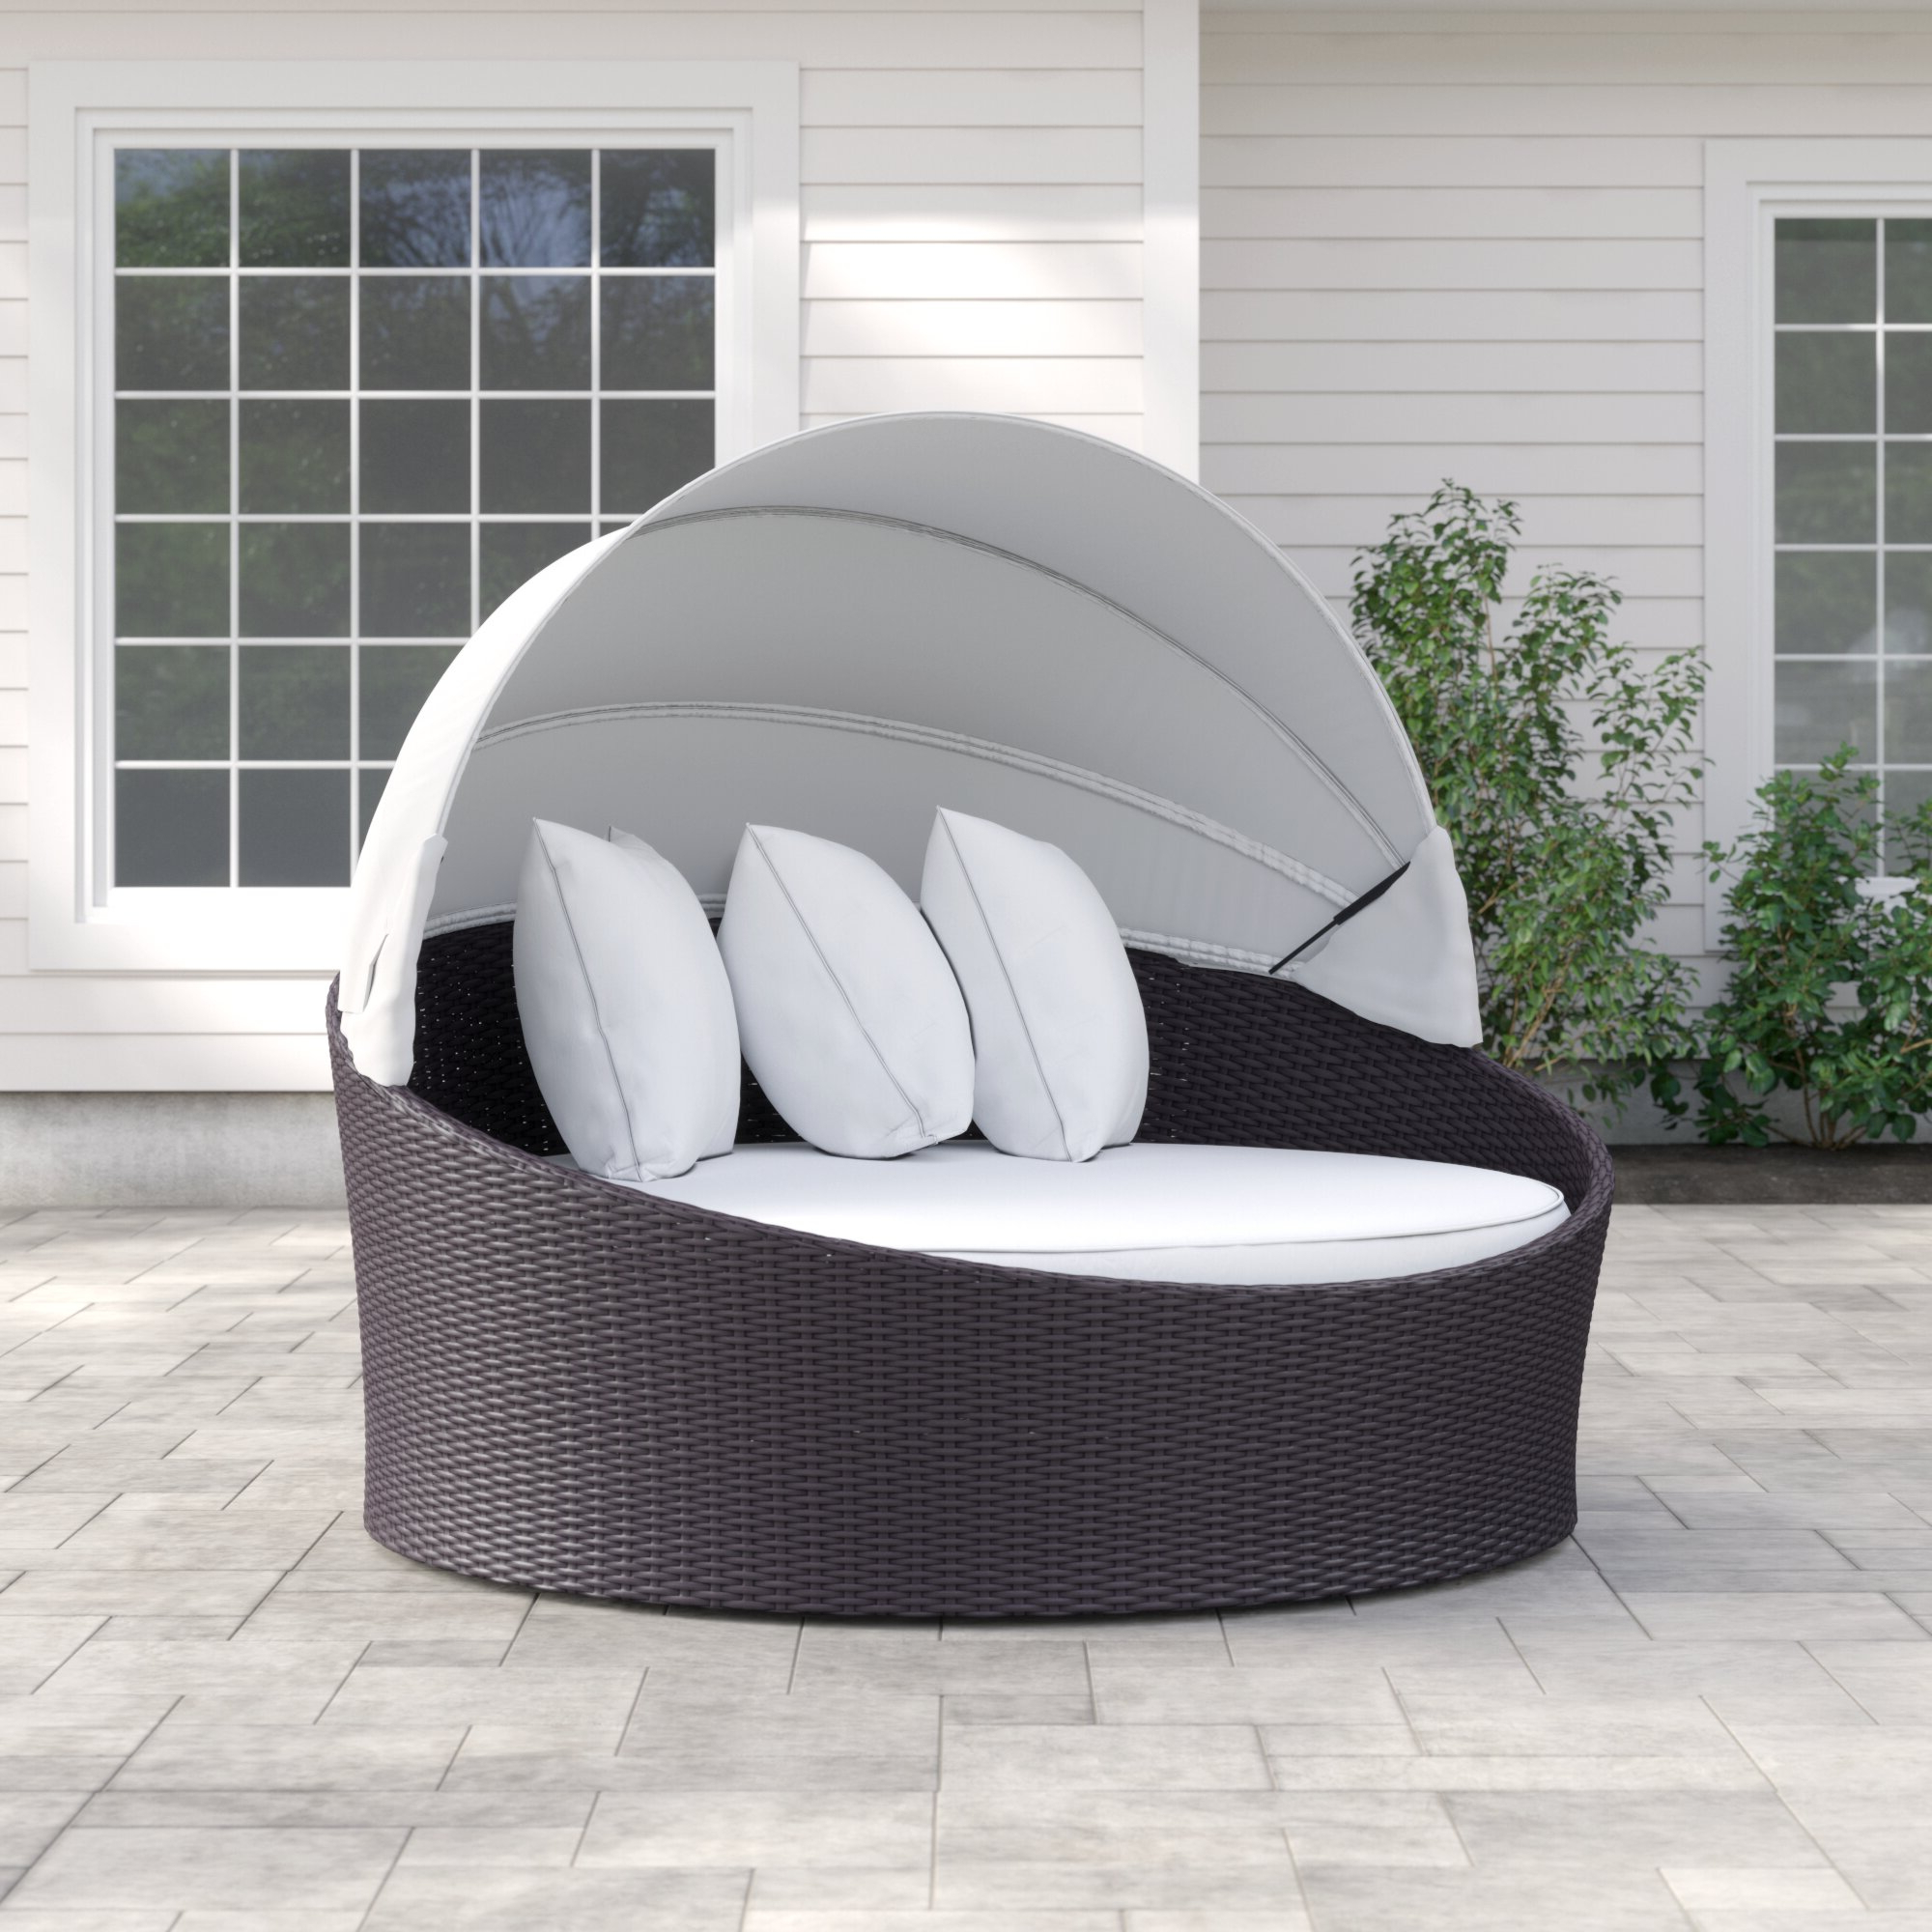 Carrasco Patio Daybeds With Cushions Inside Preferred Brentwood Canopy Patio Daybed With Cushions (View 9 of 20)